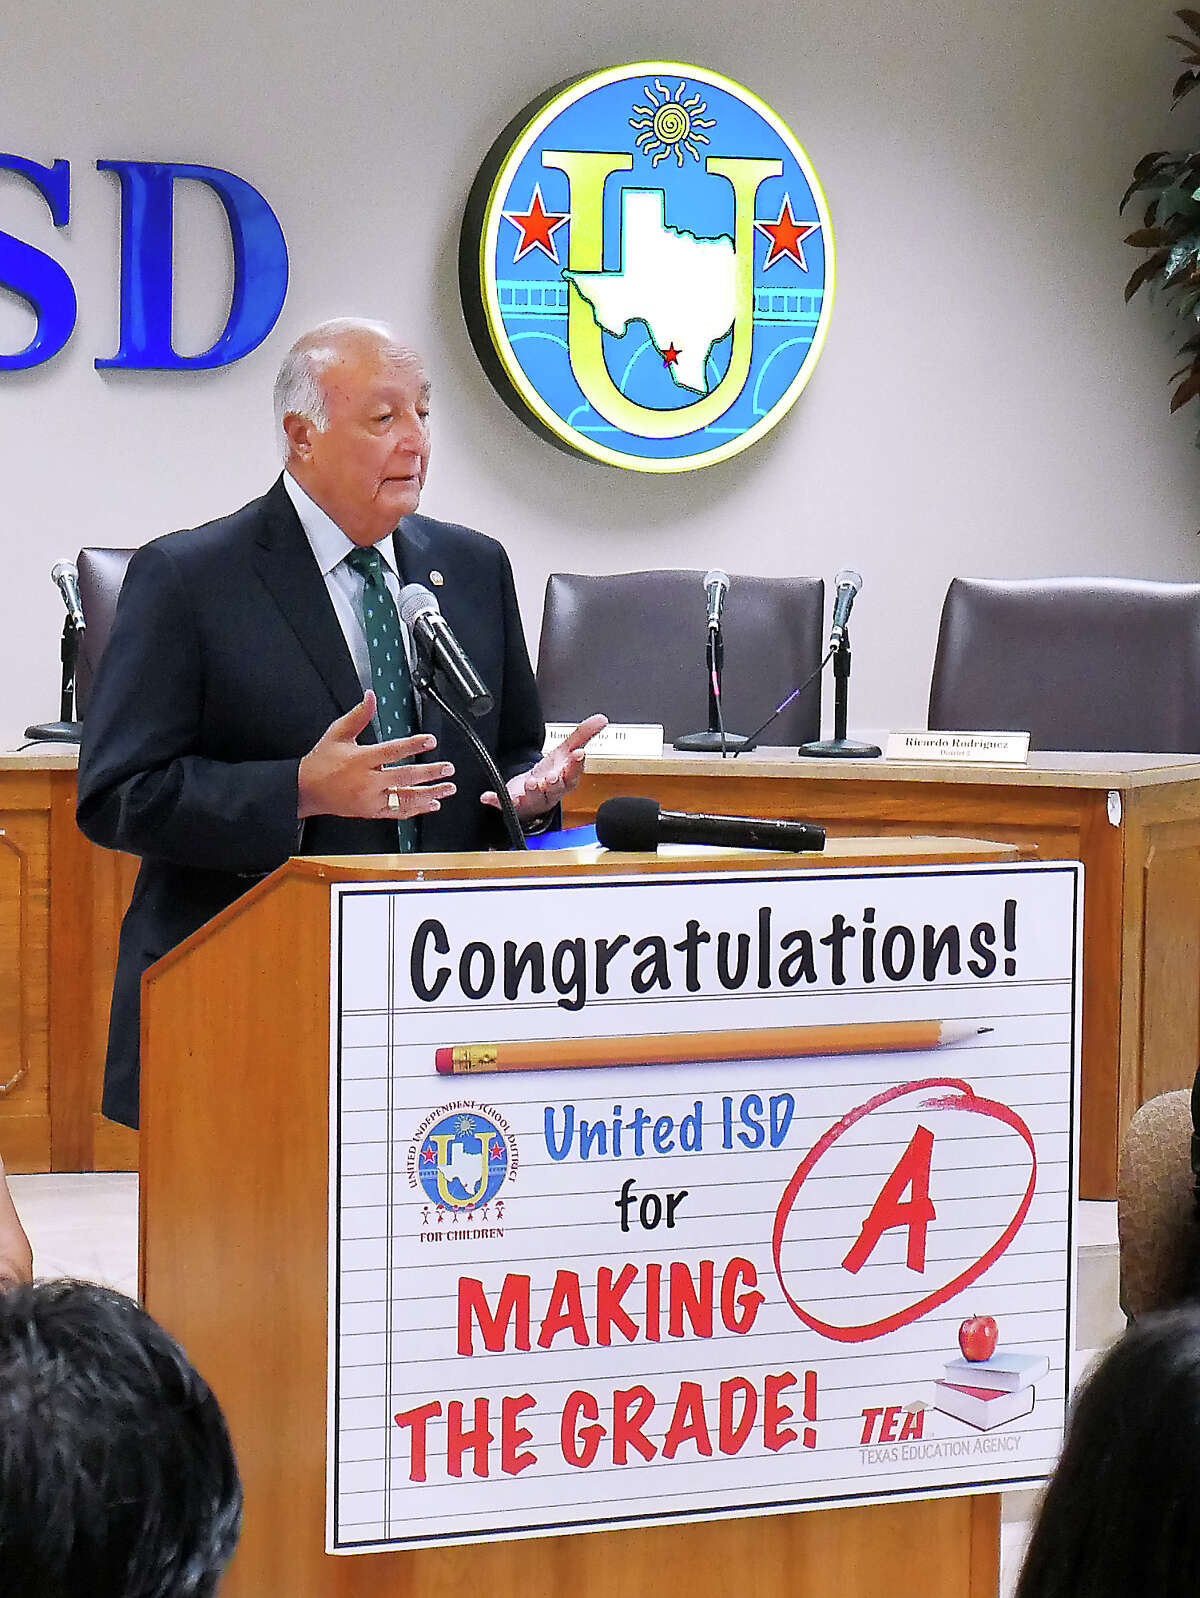 United ISD Superintendent Roberto J. Santos was accompanied by administrators and board members as they participated in a press conference, Thursday, August 16, 2018, at the UISD Board Room to announce that the district received an A rating in the Texas Education Agency 2018 state accountability ratings and a dropped in the proposed 2018 tax rate.